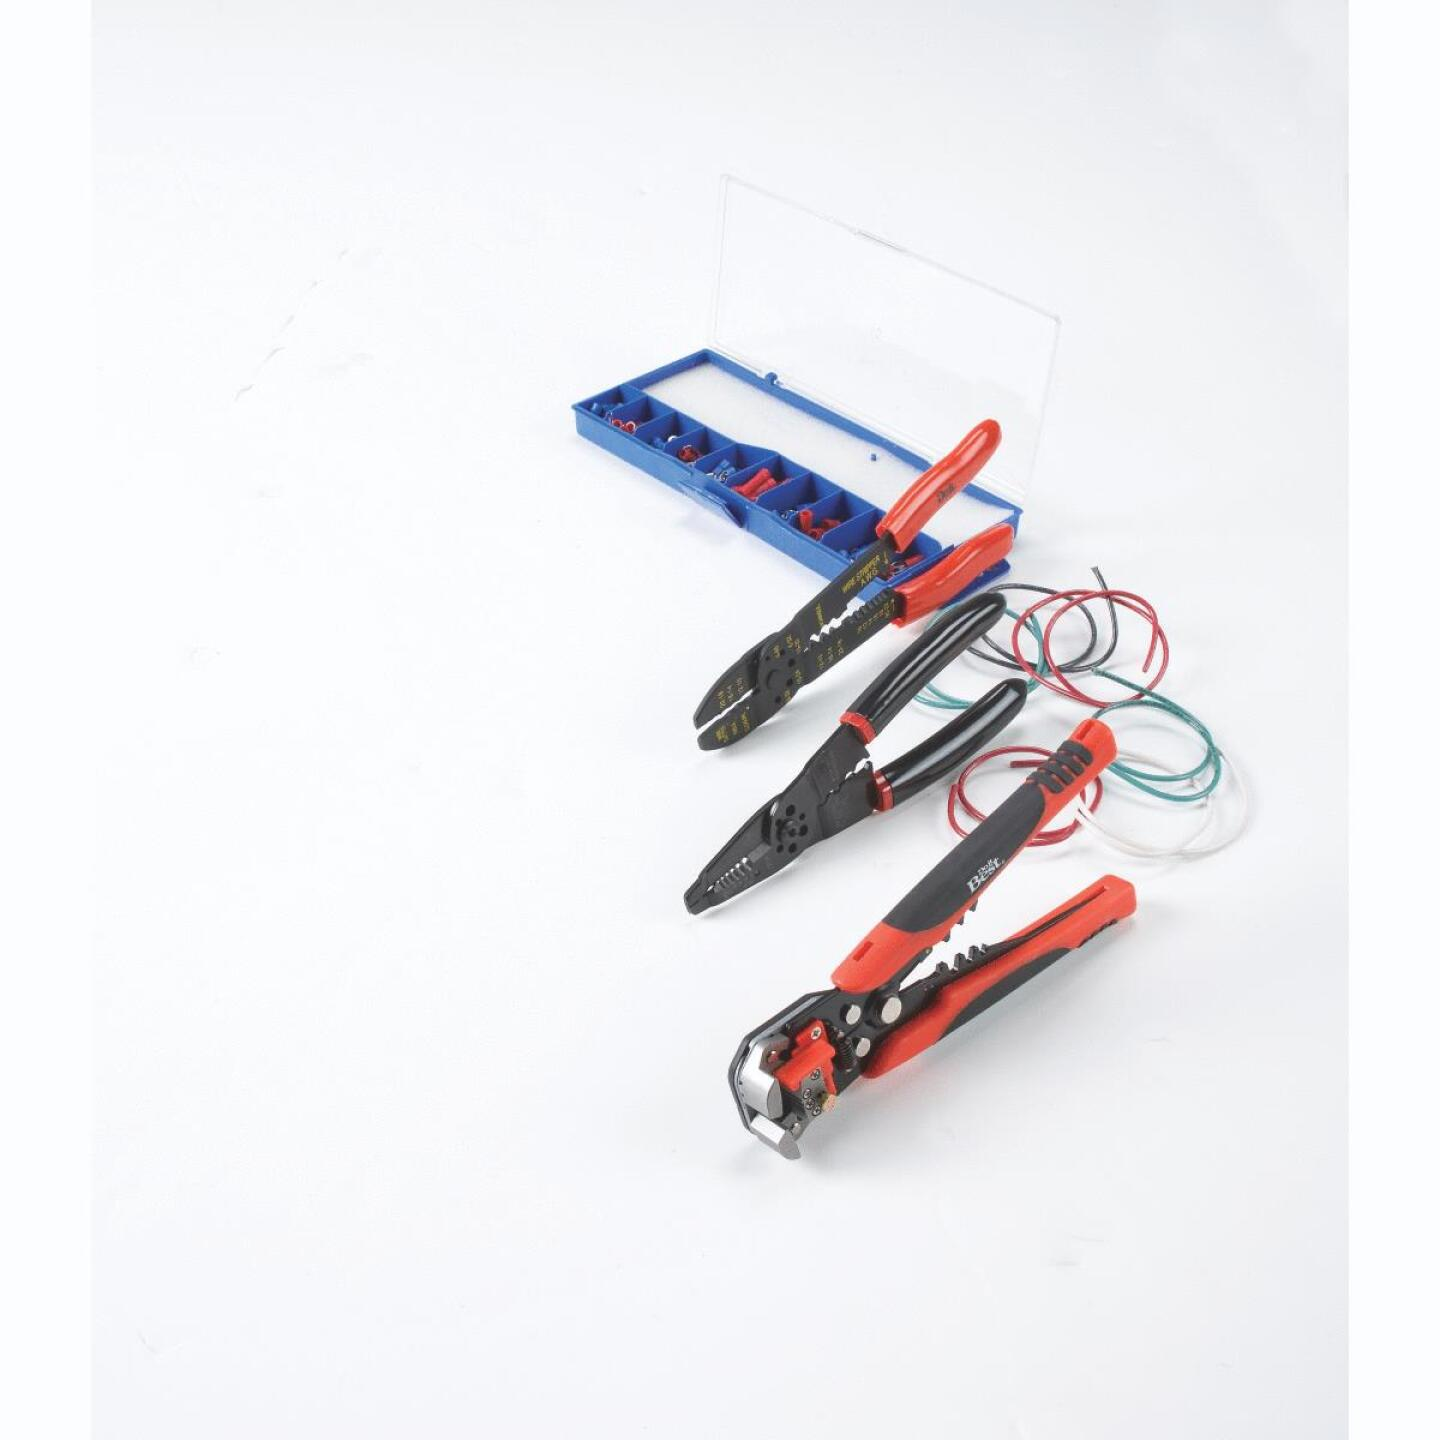 Do It Best 8 In. 10 to 26 AWG Solid/Stranded Auto Wire Stripper Image 4